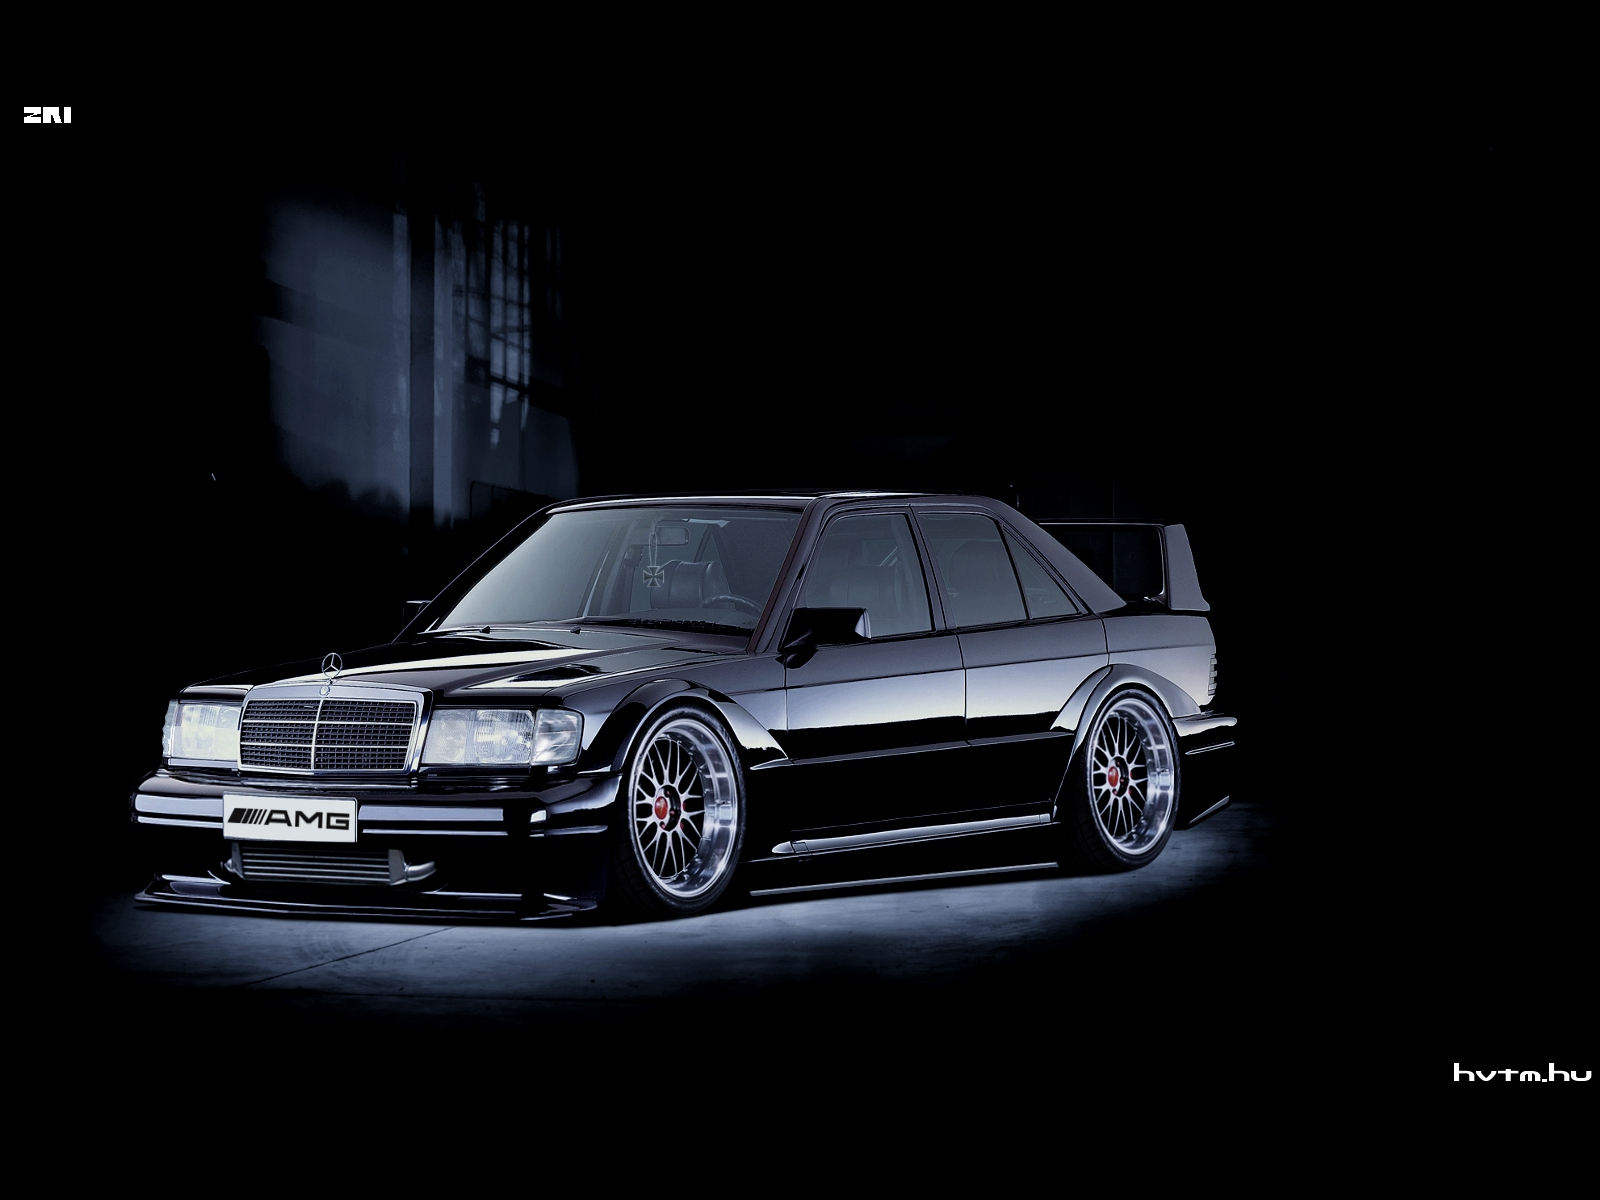 Mercedes benz 190e cosworth by zr1vts on deviantart for Mercedes benz net worth 2017